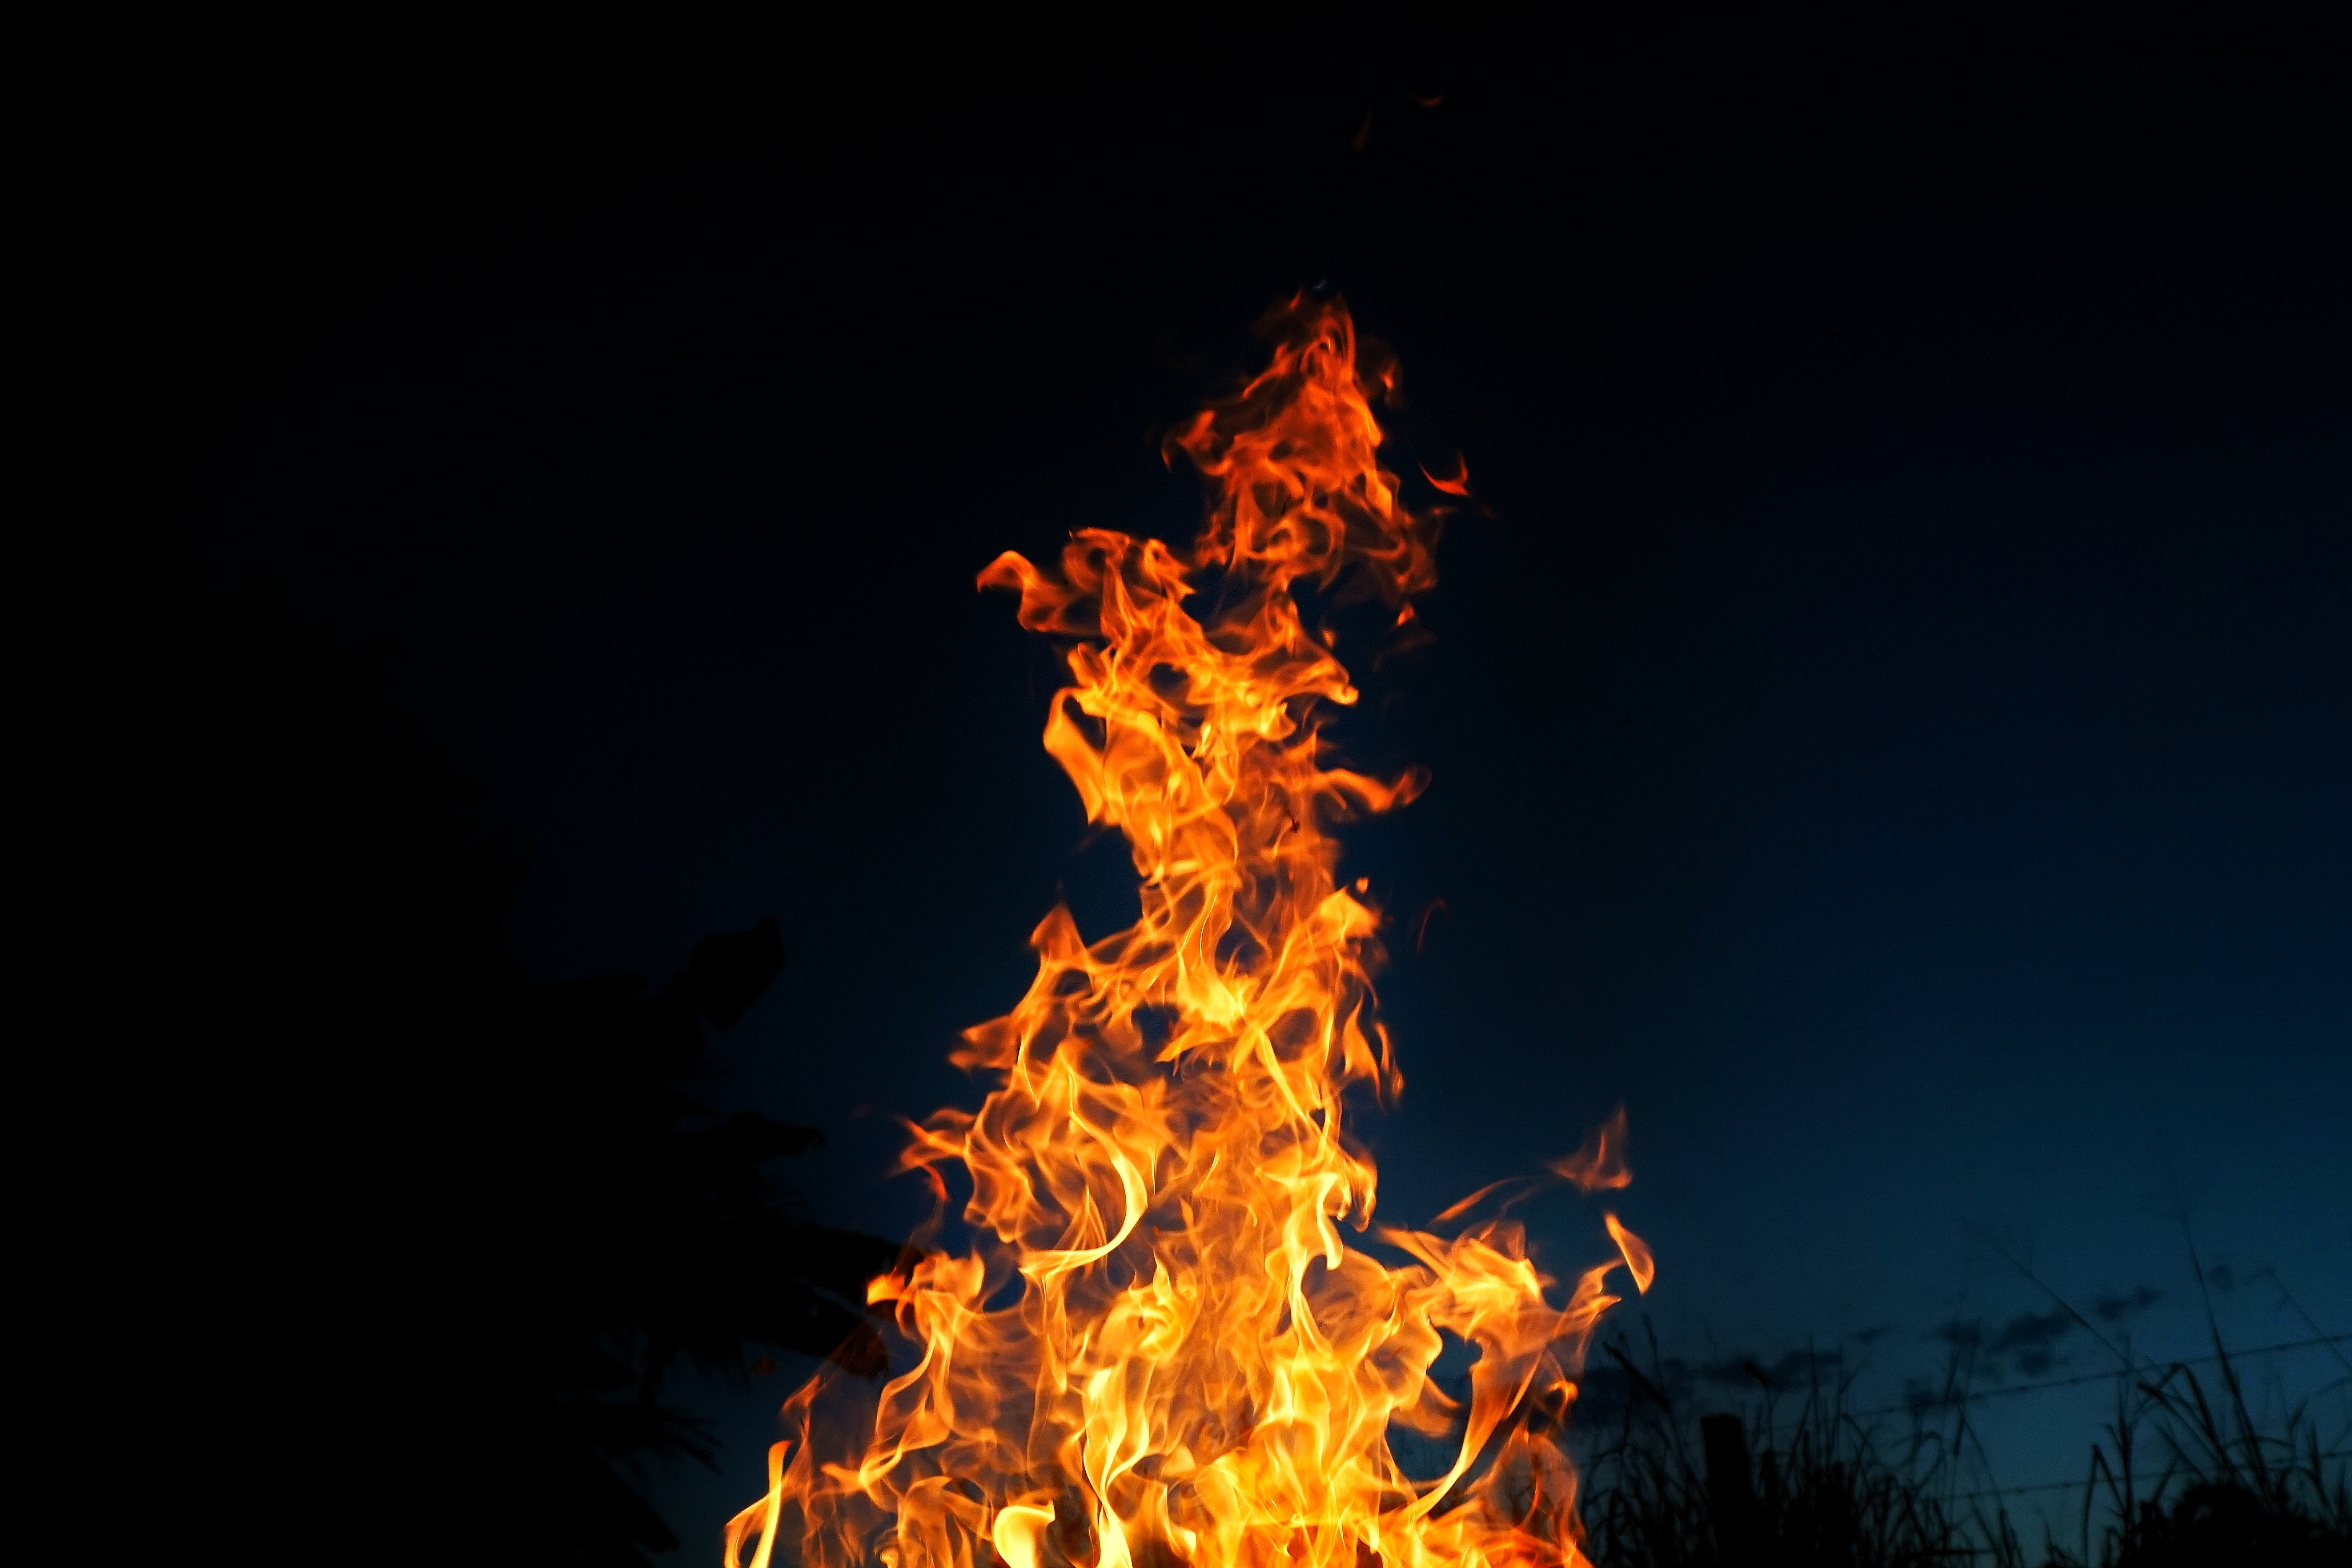 Fire Burning, HD Photography, 4k Wallpapers, Images ...